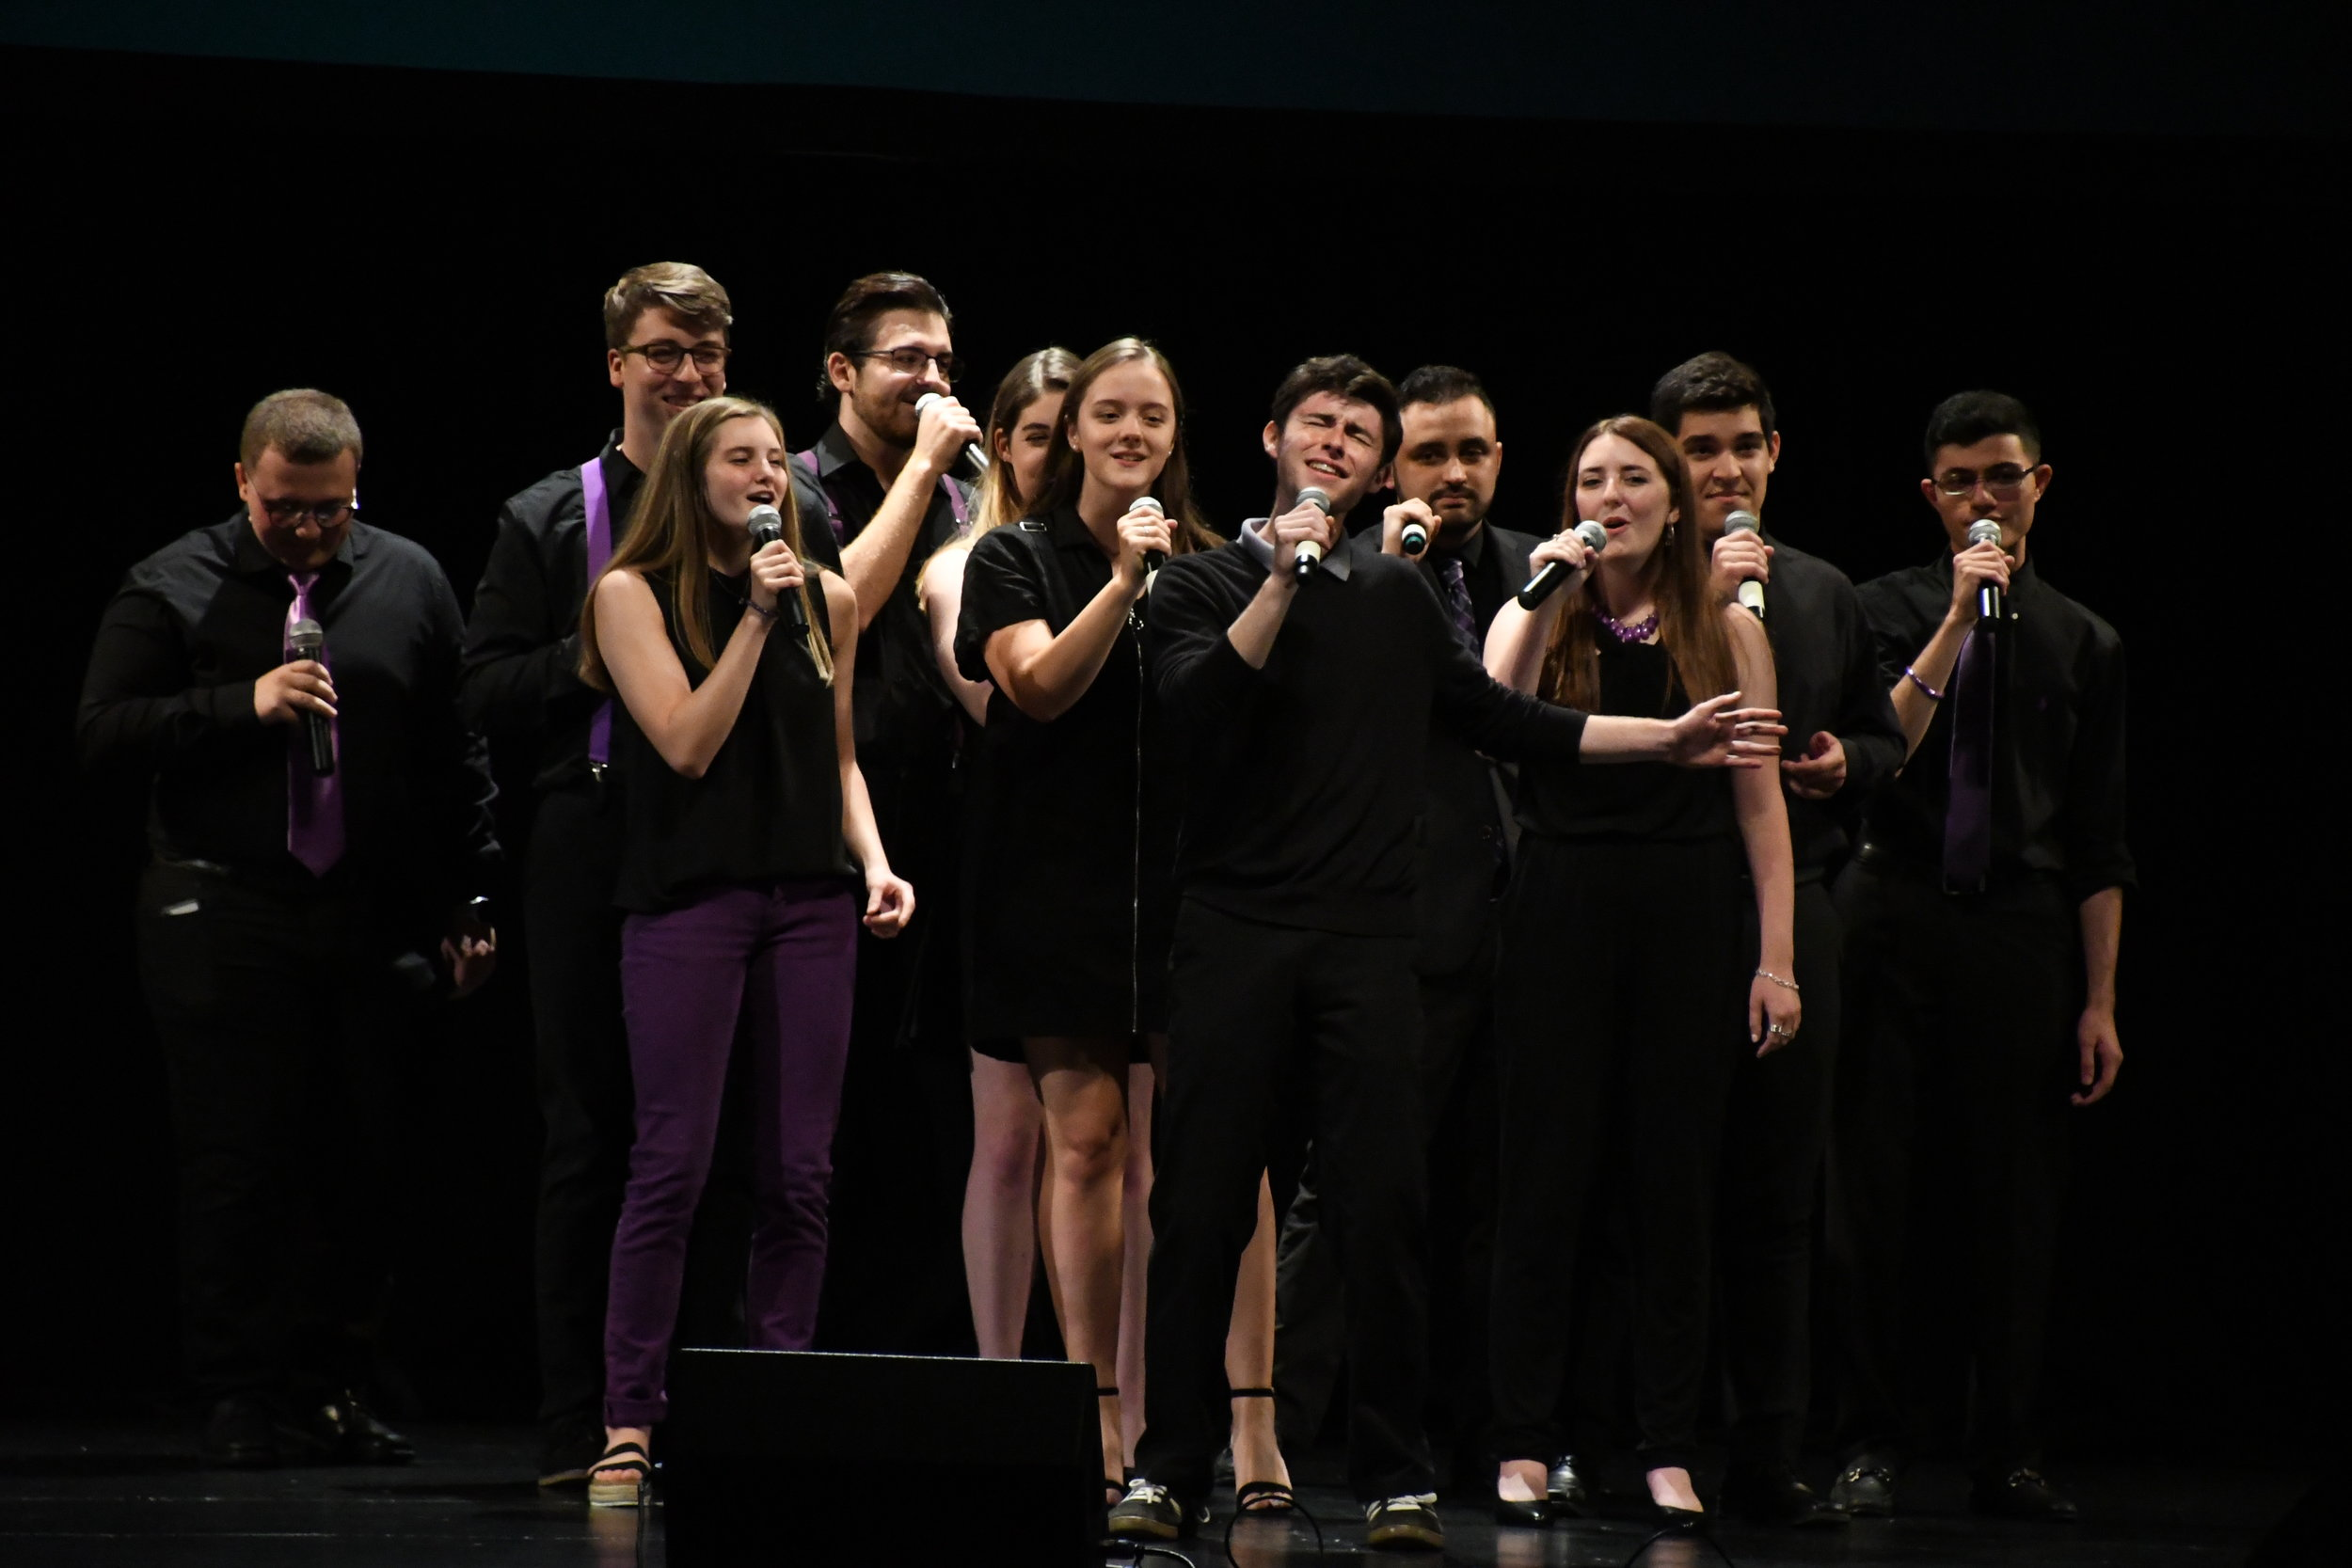 Notes Over Storrs performed 'Mine' by Bazzi and 'The Chain' by Fleetwood Mac at the concert on Friday.   Photo by Julie Spillane for The Daily Campus.